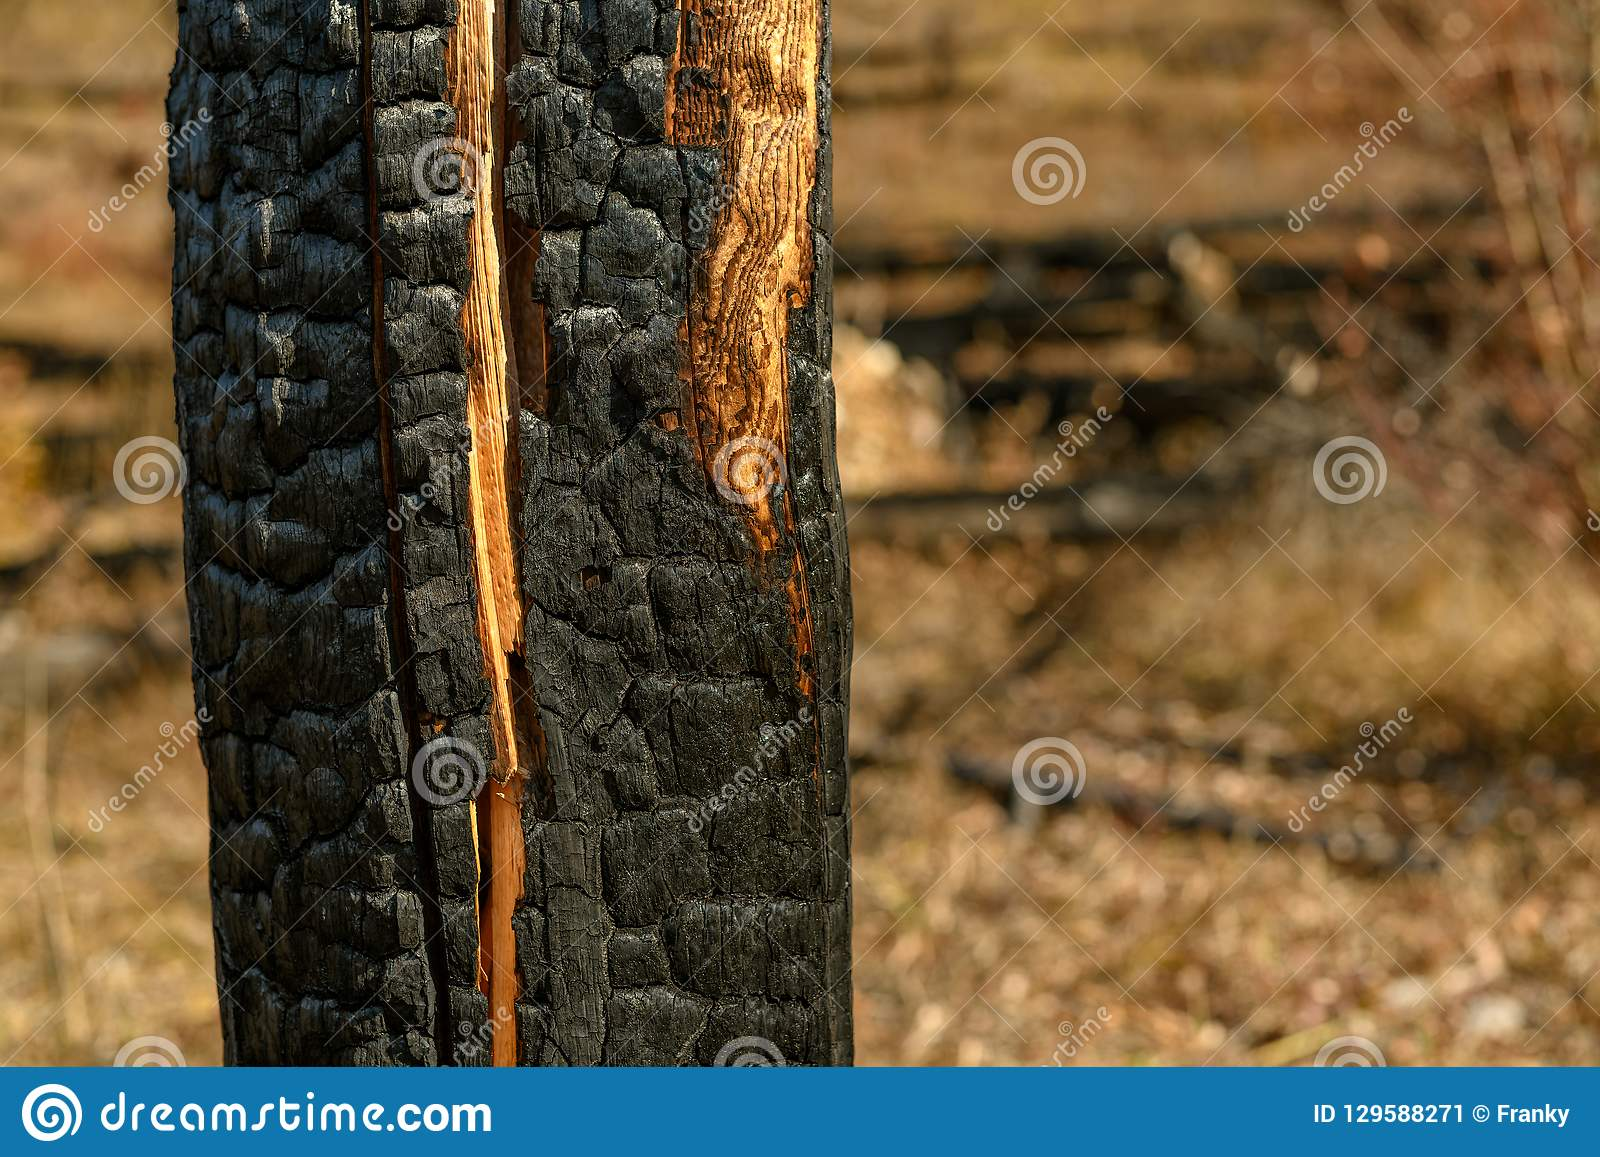 Burnt trees on mountain after wildfire